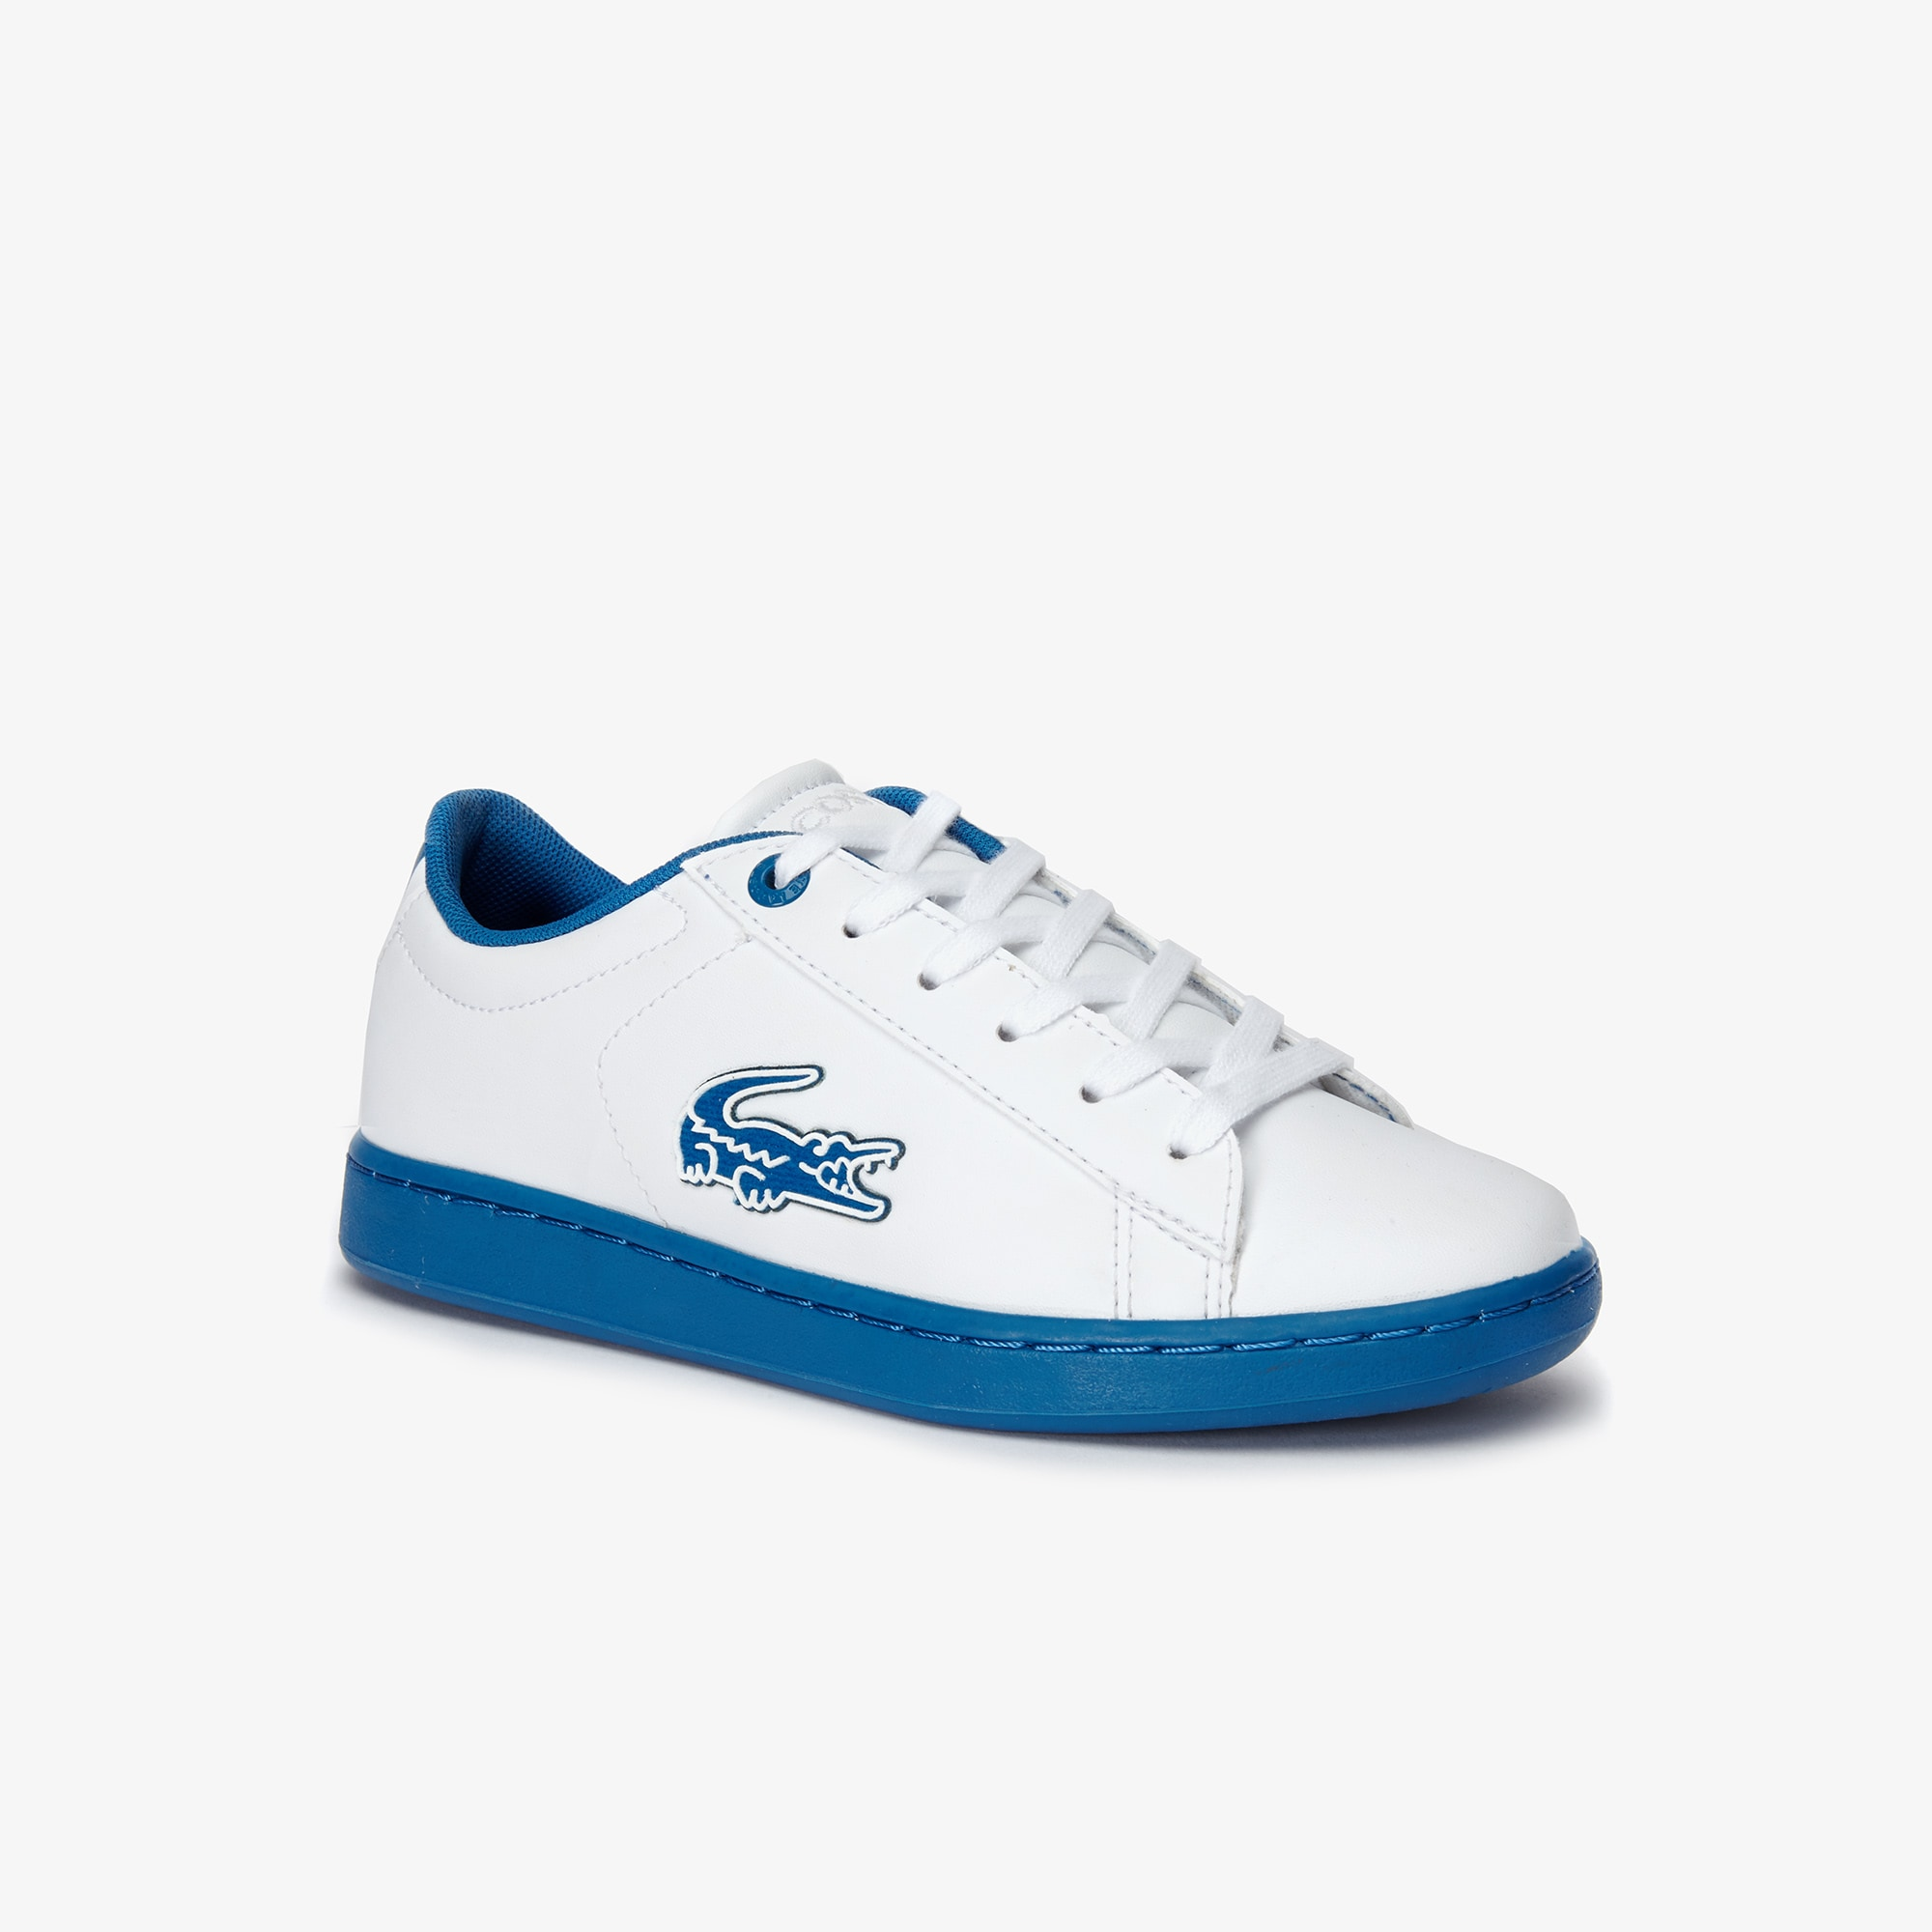 spitz lacoste for toddlers - 51% OFF